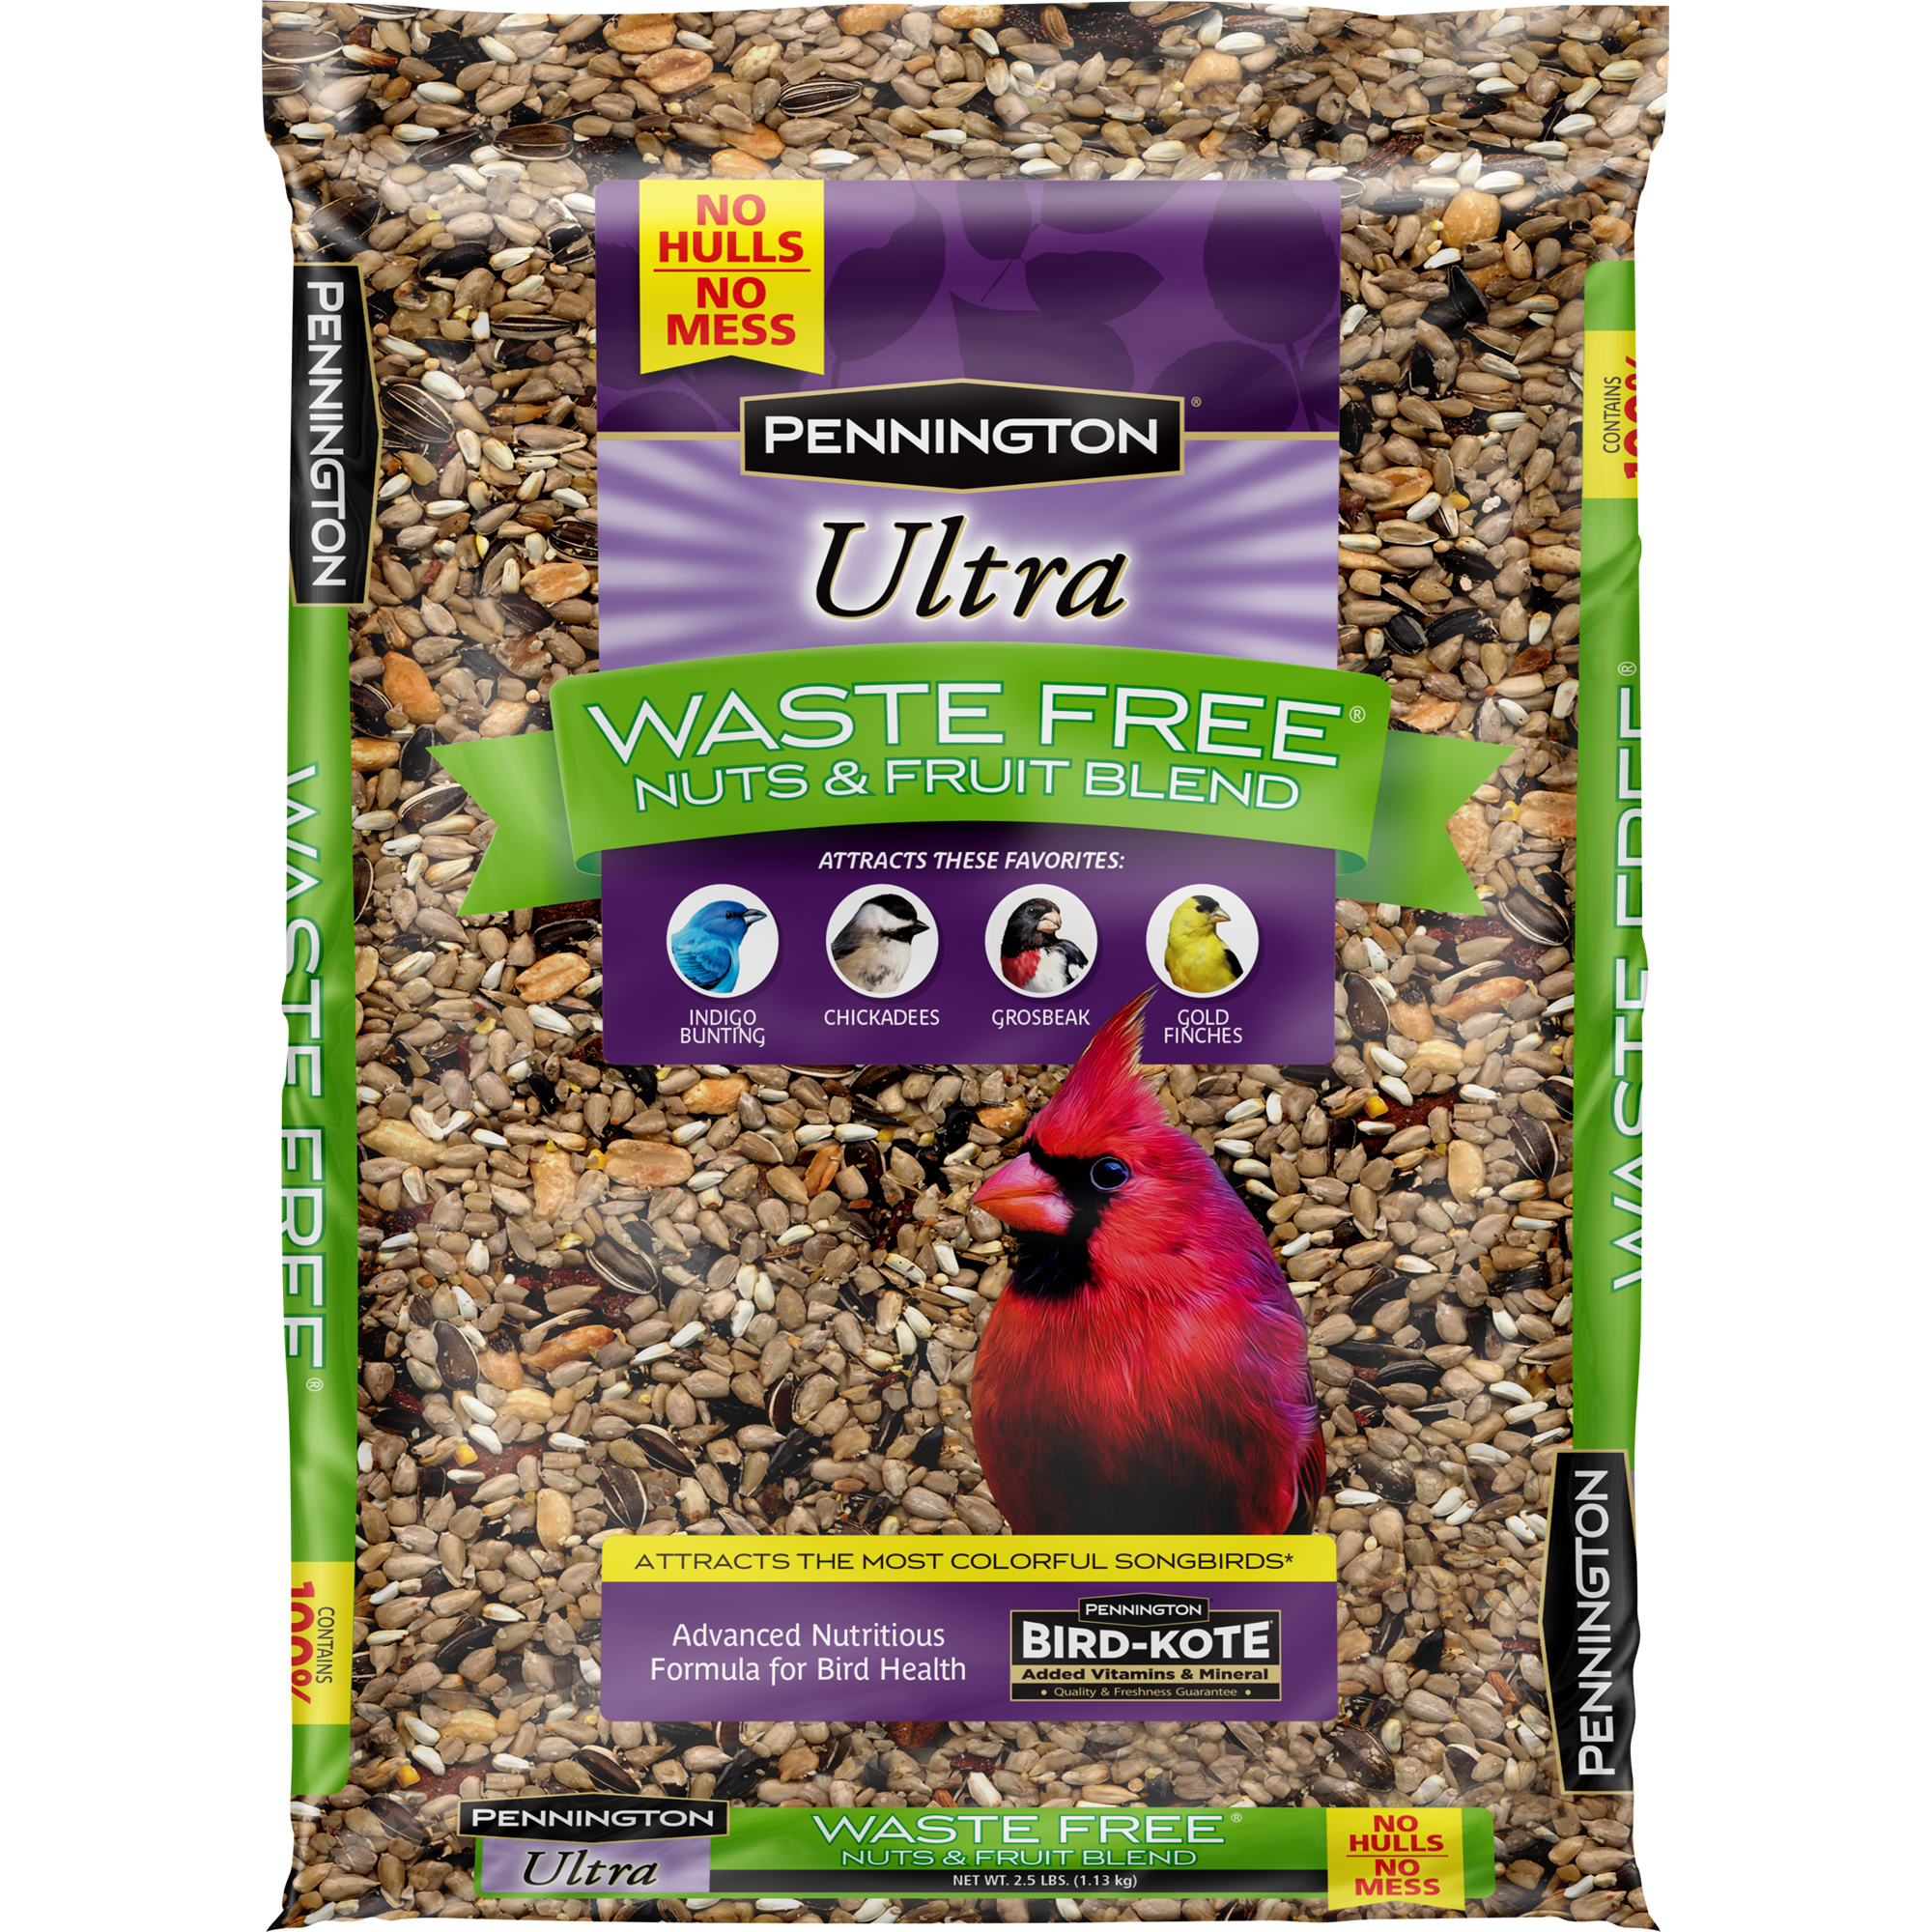 Pennington Bird Feed and Seed Nuts & Fruit Blend Waste Free, 2.5 LB by Central Garden and Pet